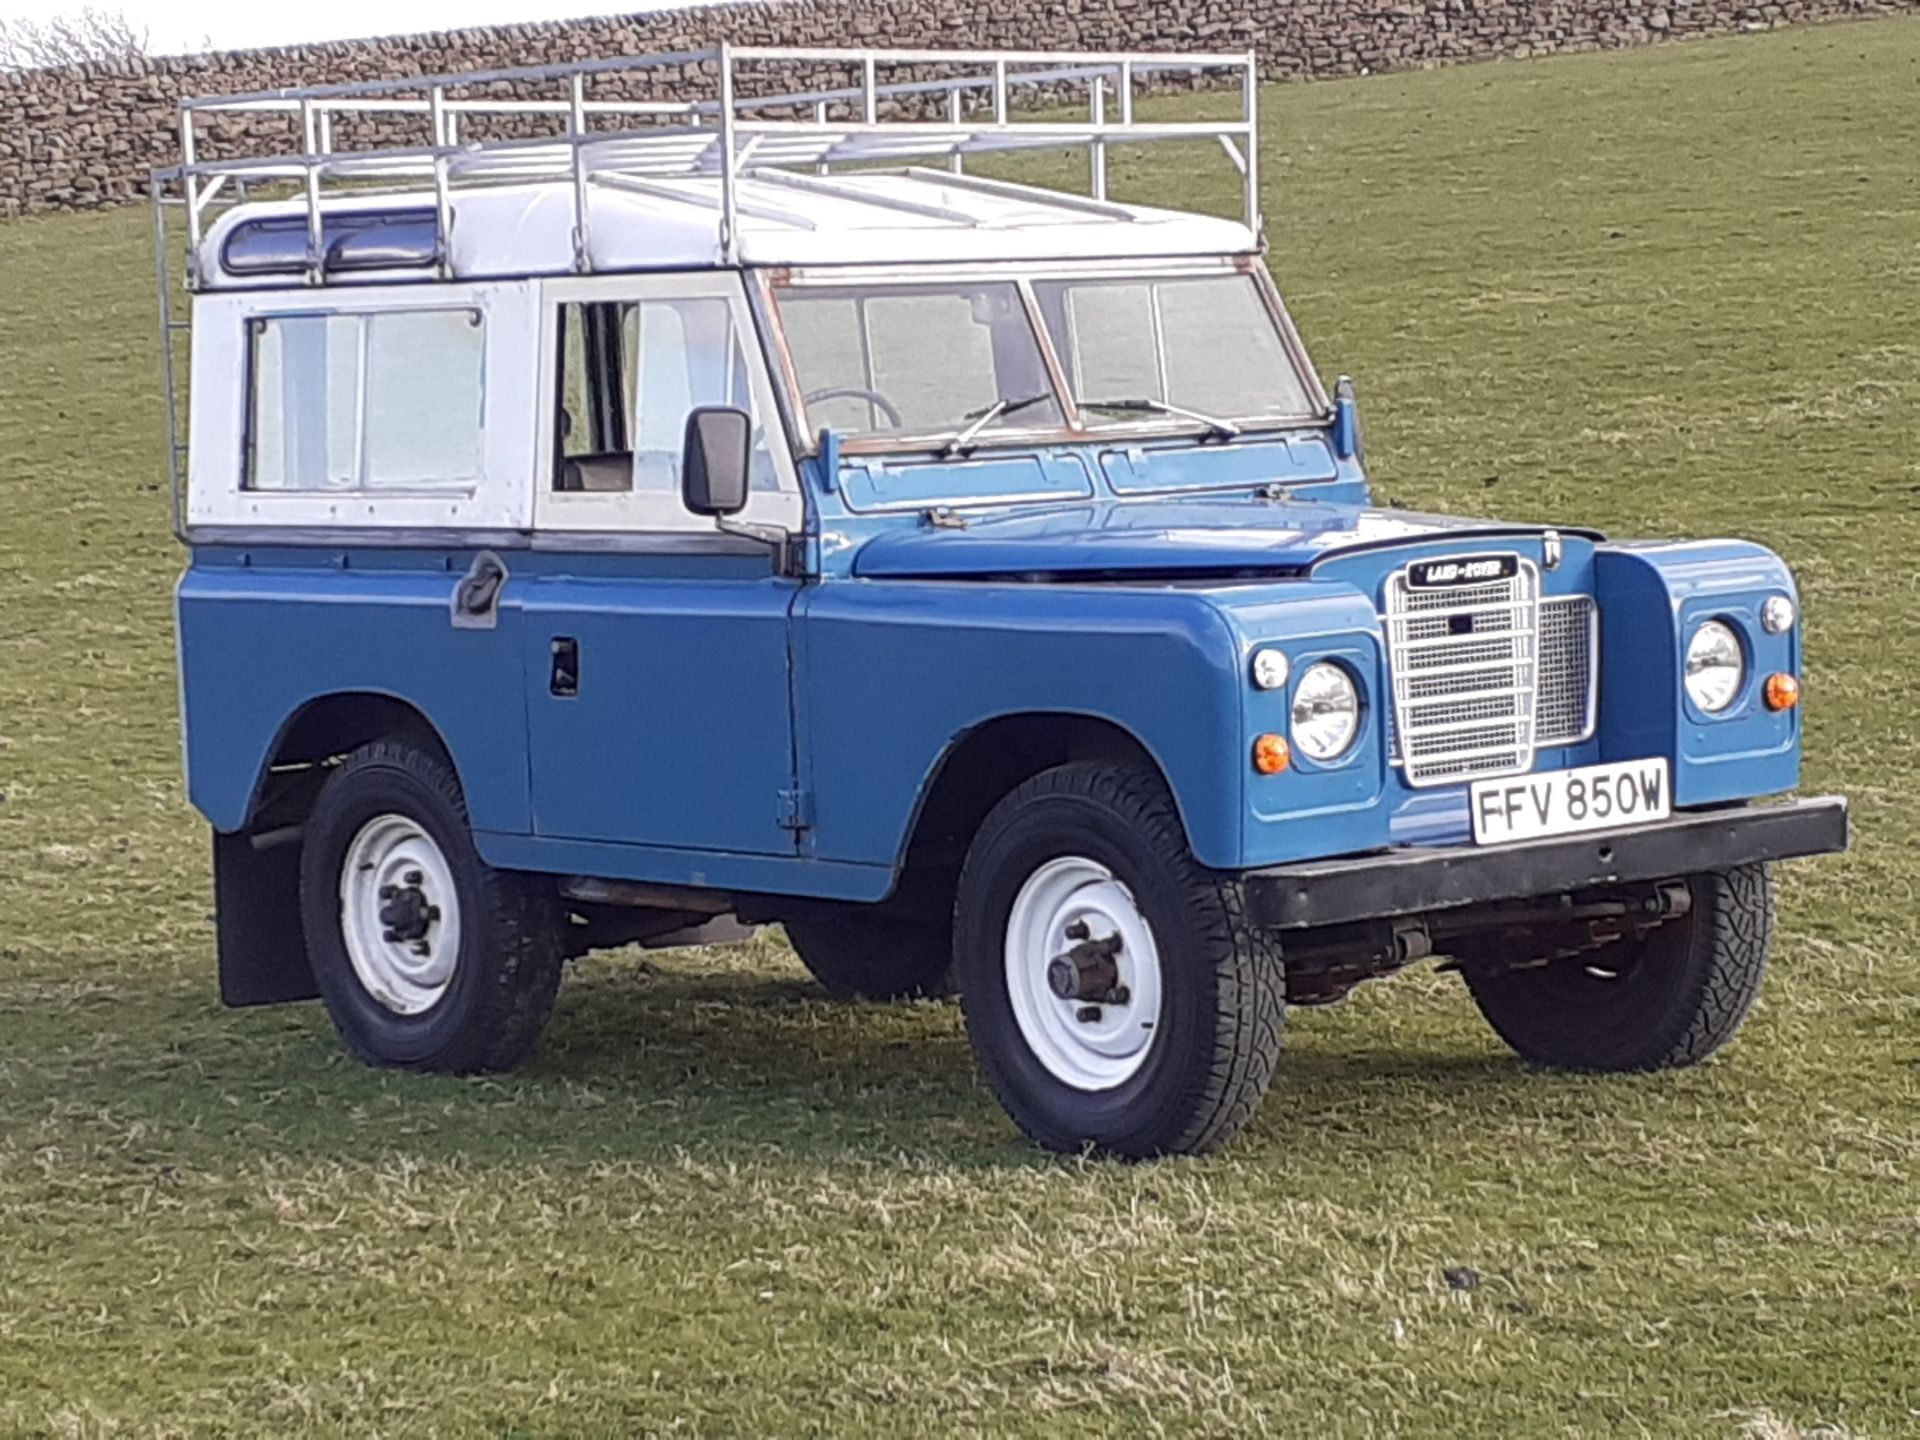 1980 LAND ROVER SERIES III CLASSIC STATION WAGON, TAX AND MOT EXEMPT *NO VAT* - Image 11 of 22